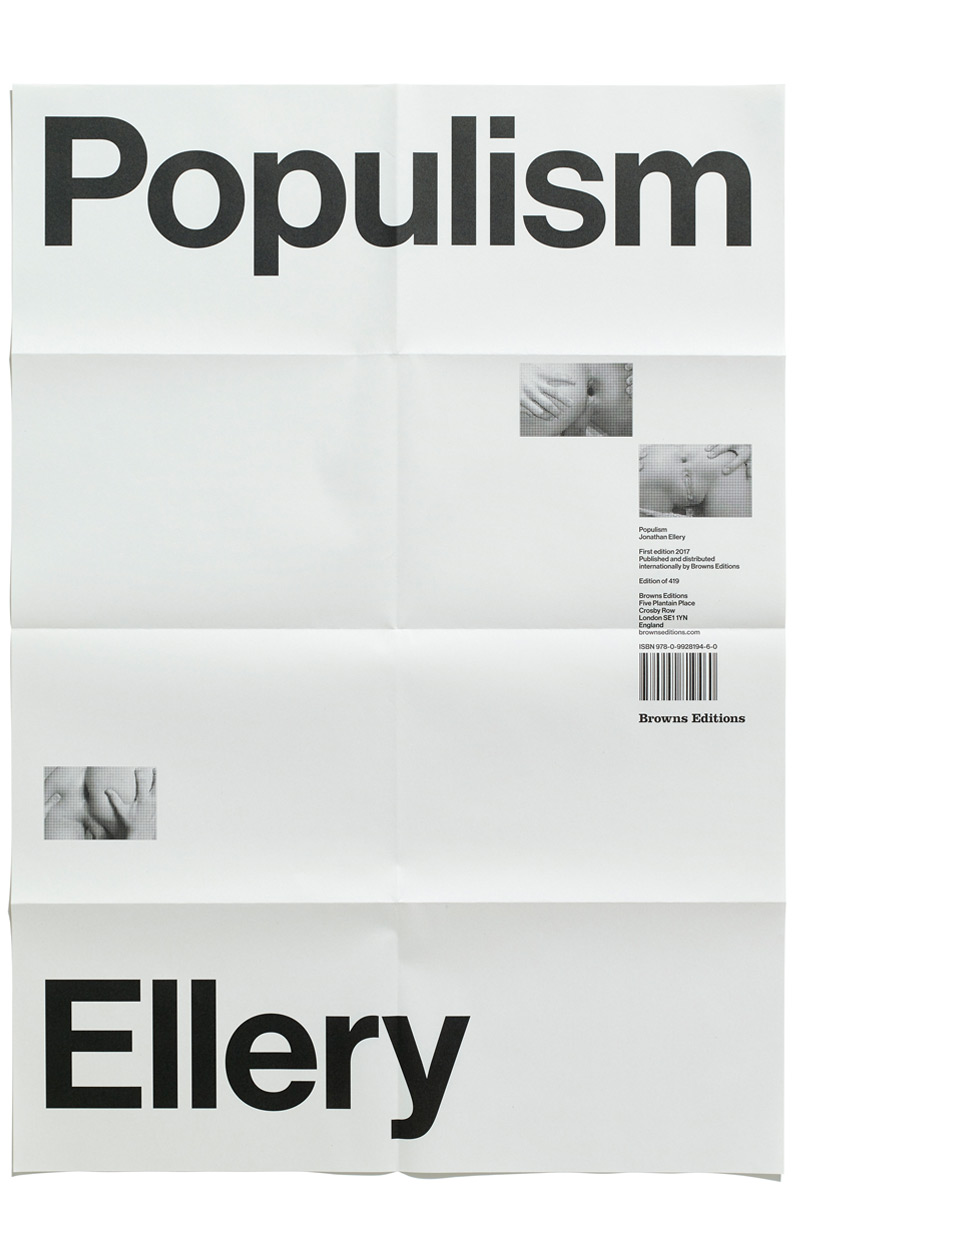 Populism Poster, Jonathan Ellery, Browns Editions and Browns Design, 2017